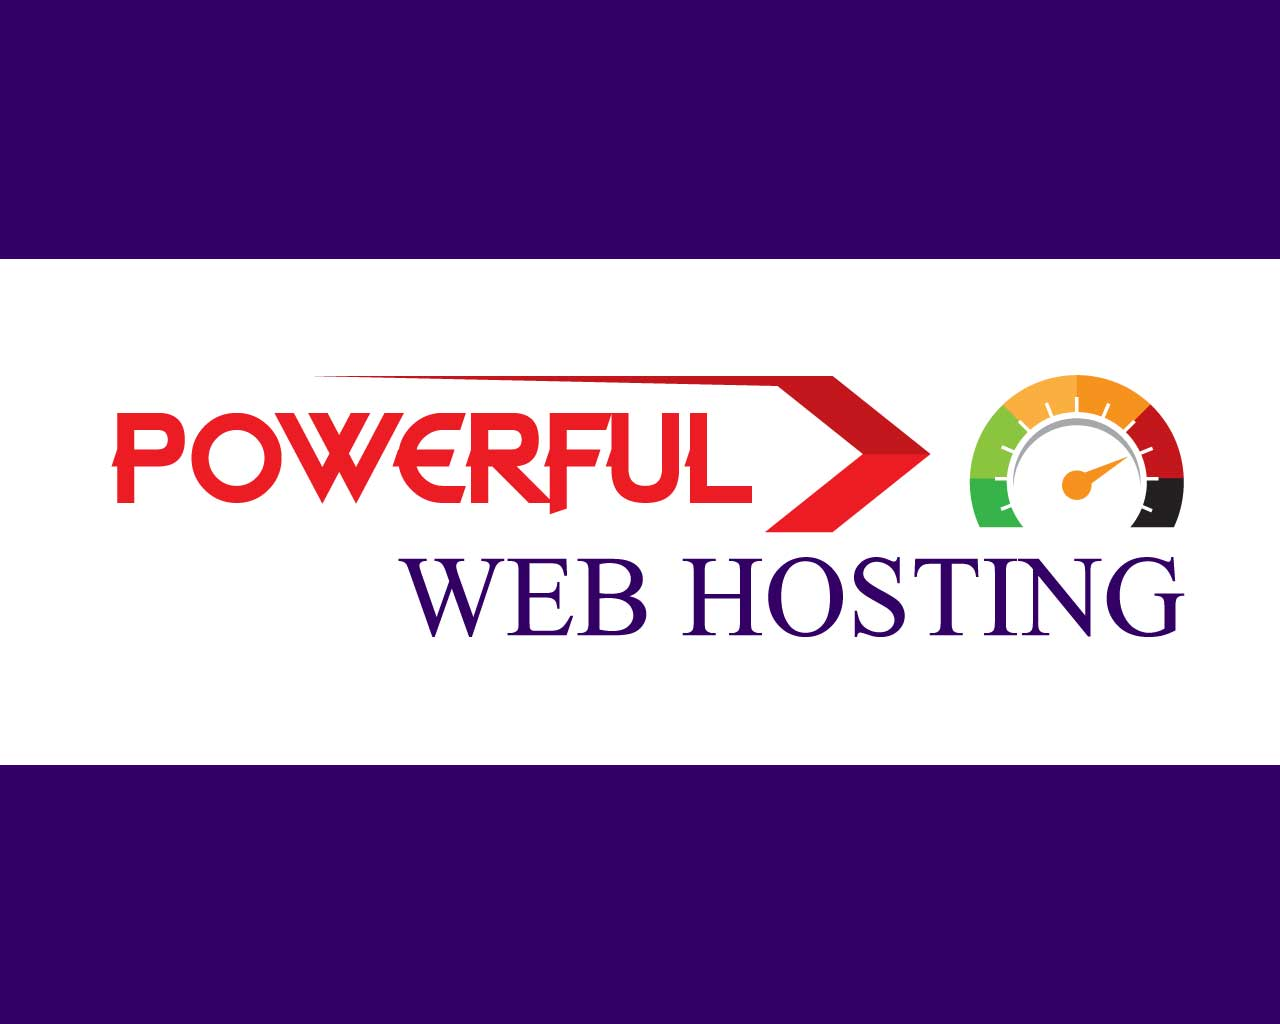 Powerful Web Hosting Company and Buying Guide